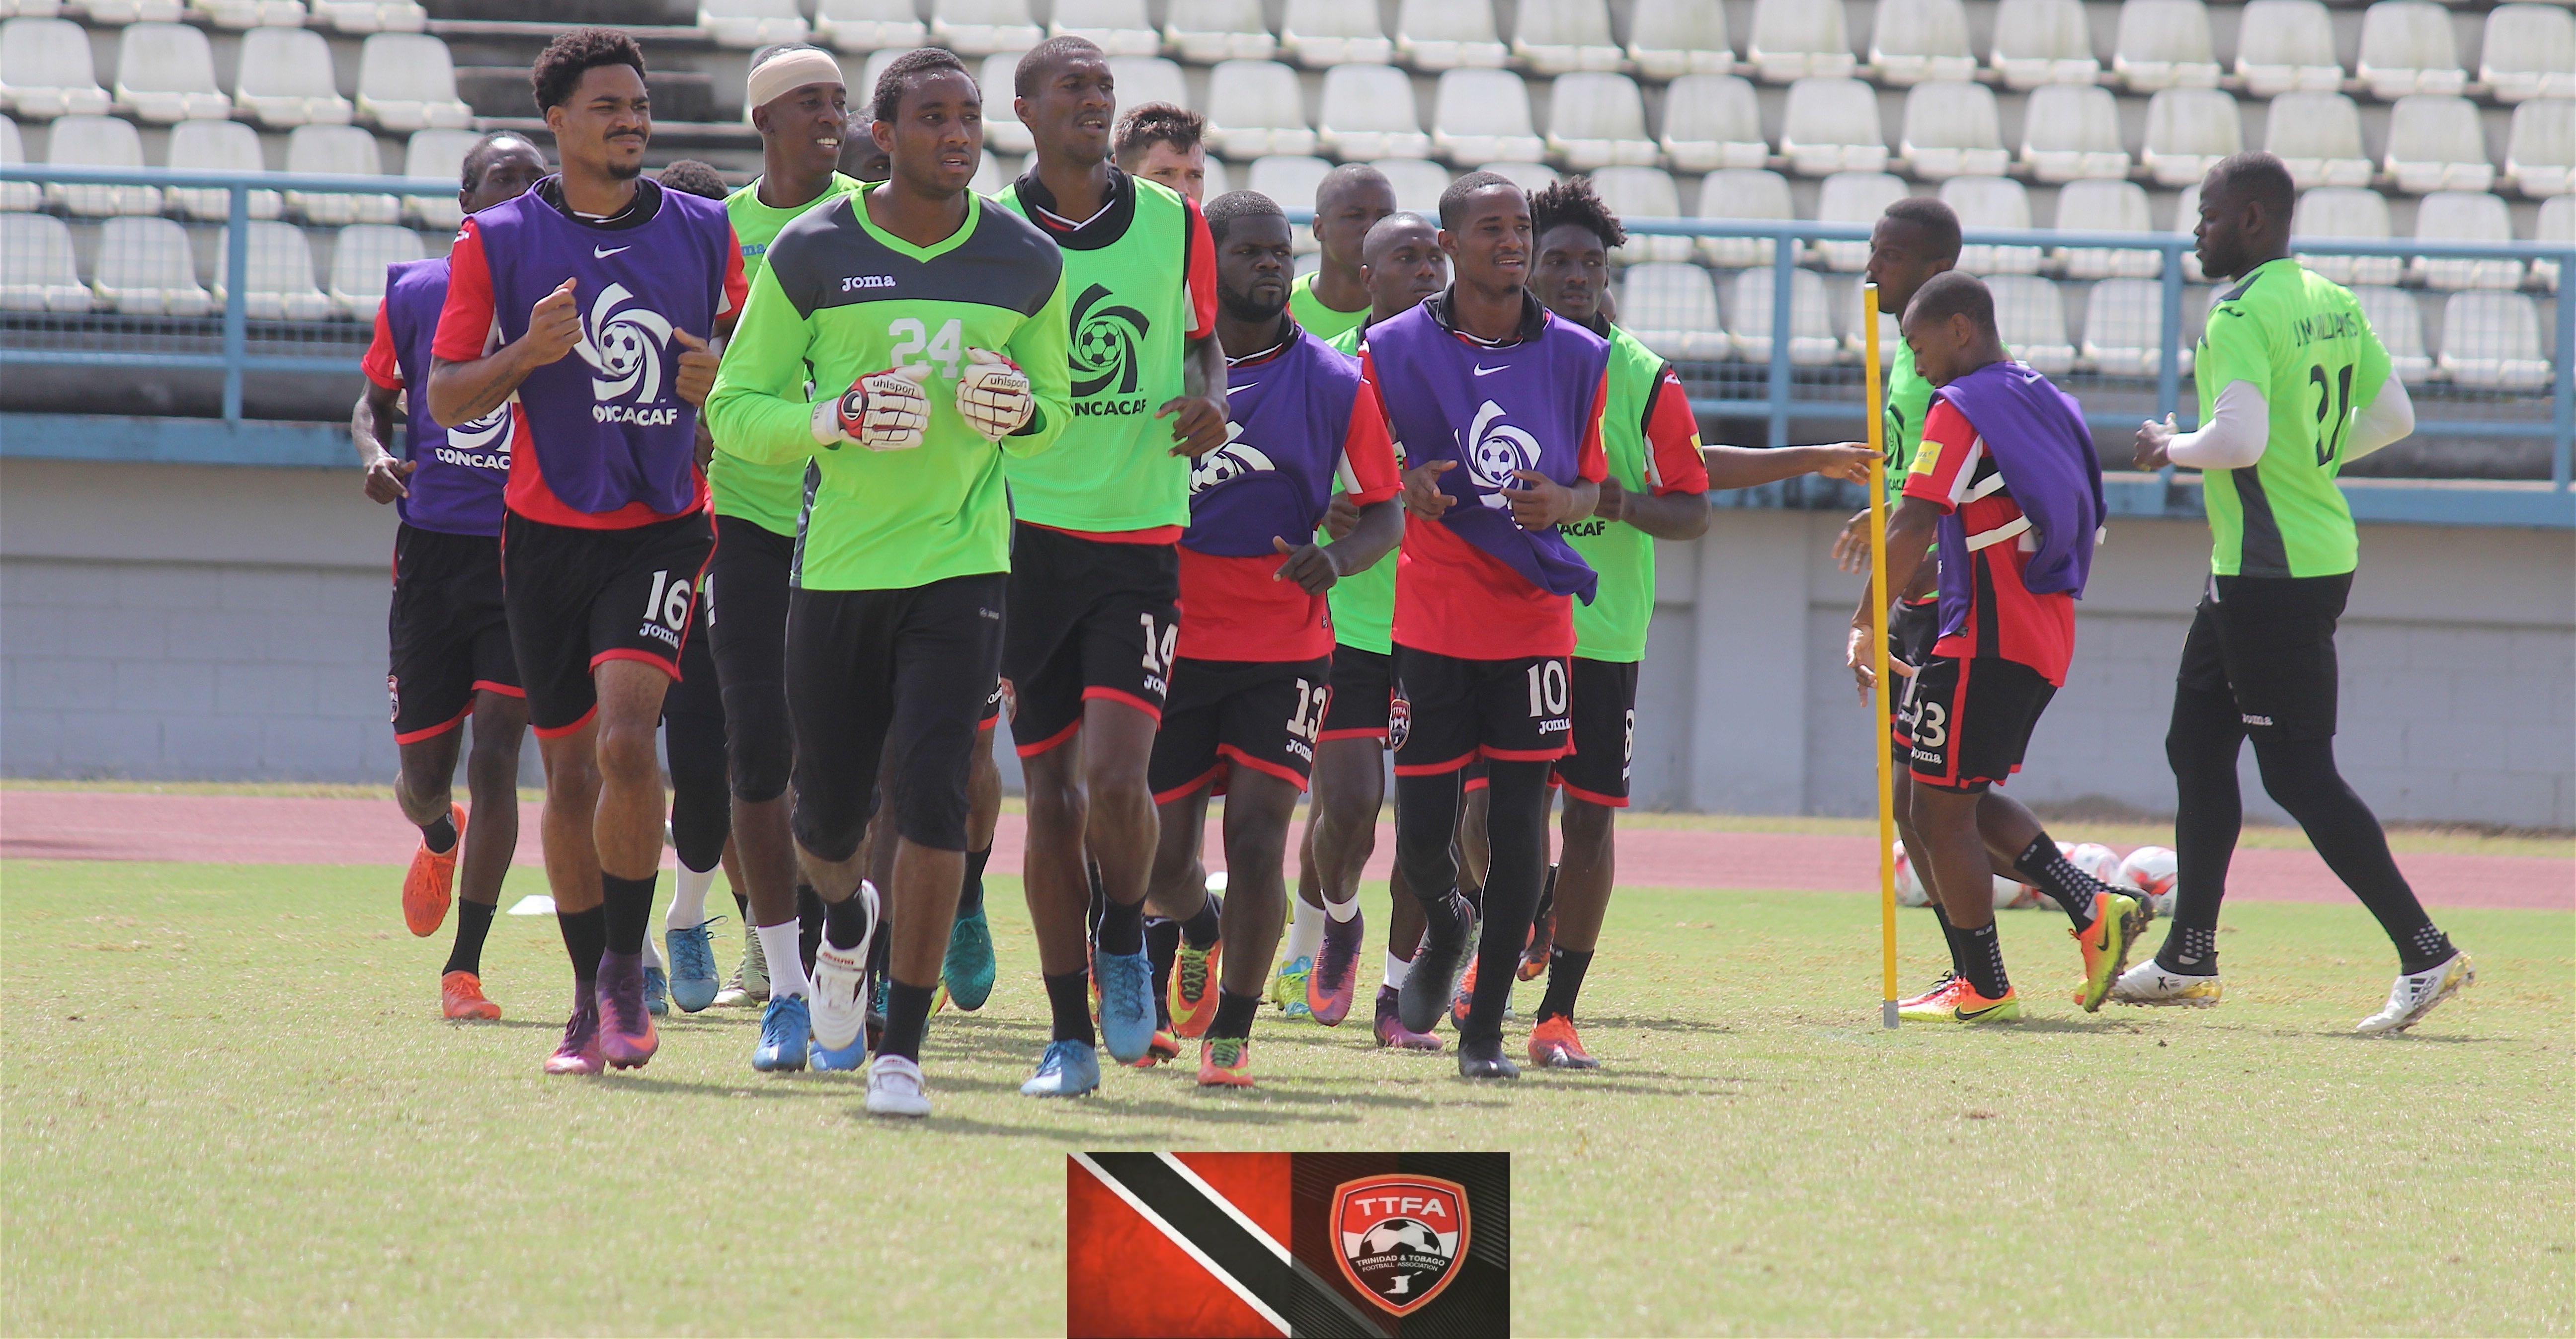 Players respond positively to Lawrence in opening training camp.